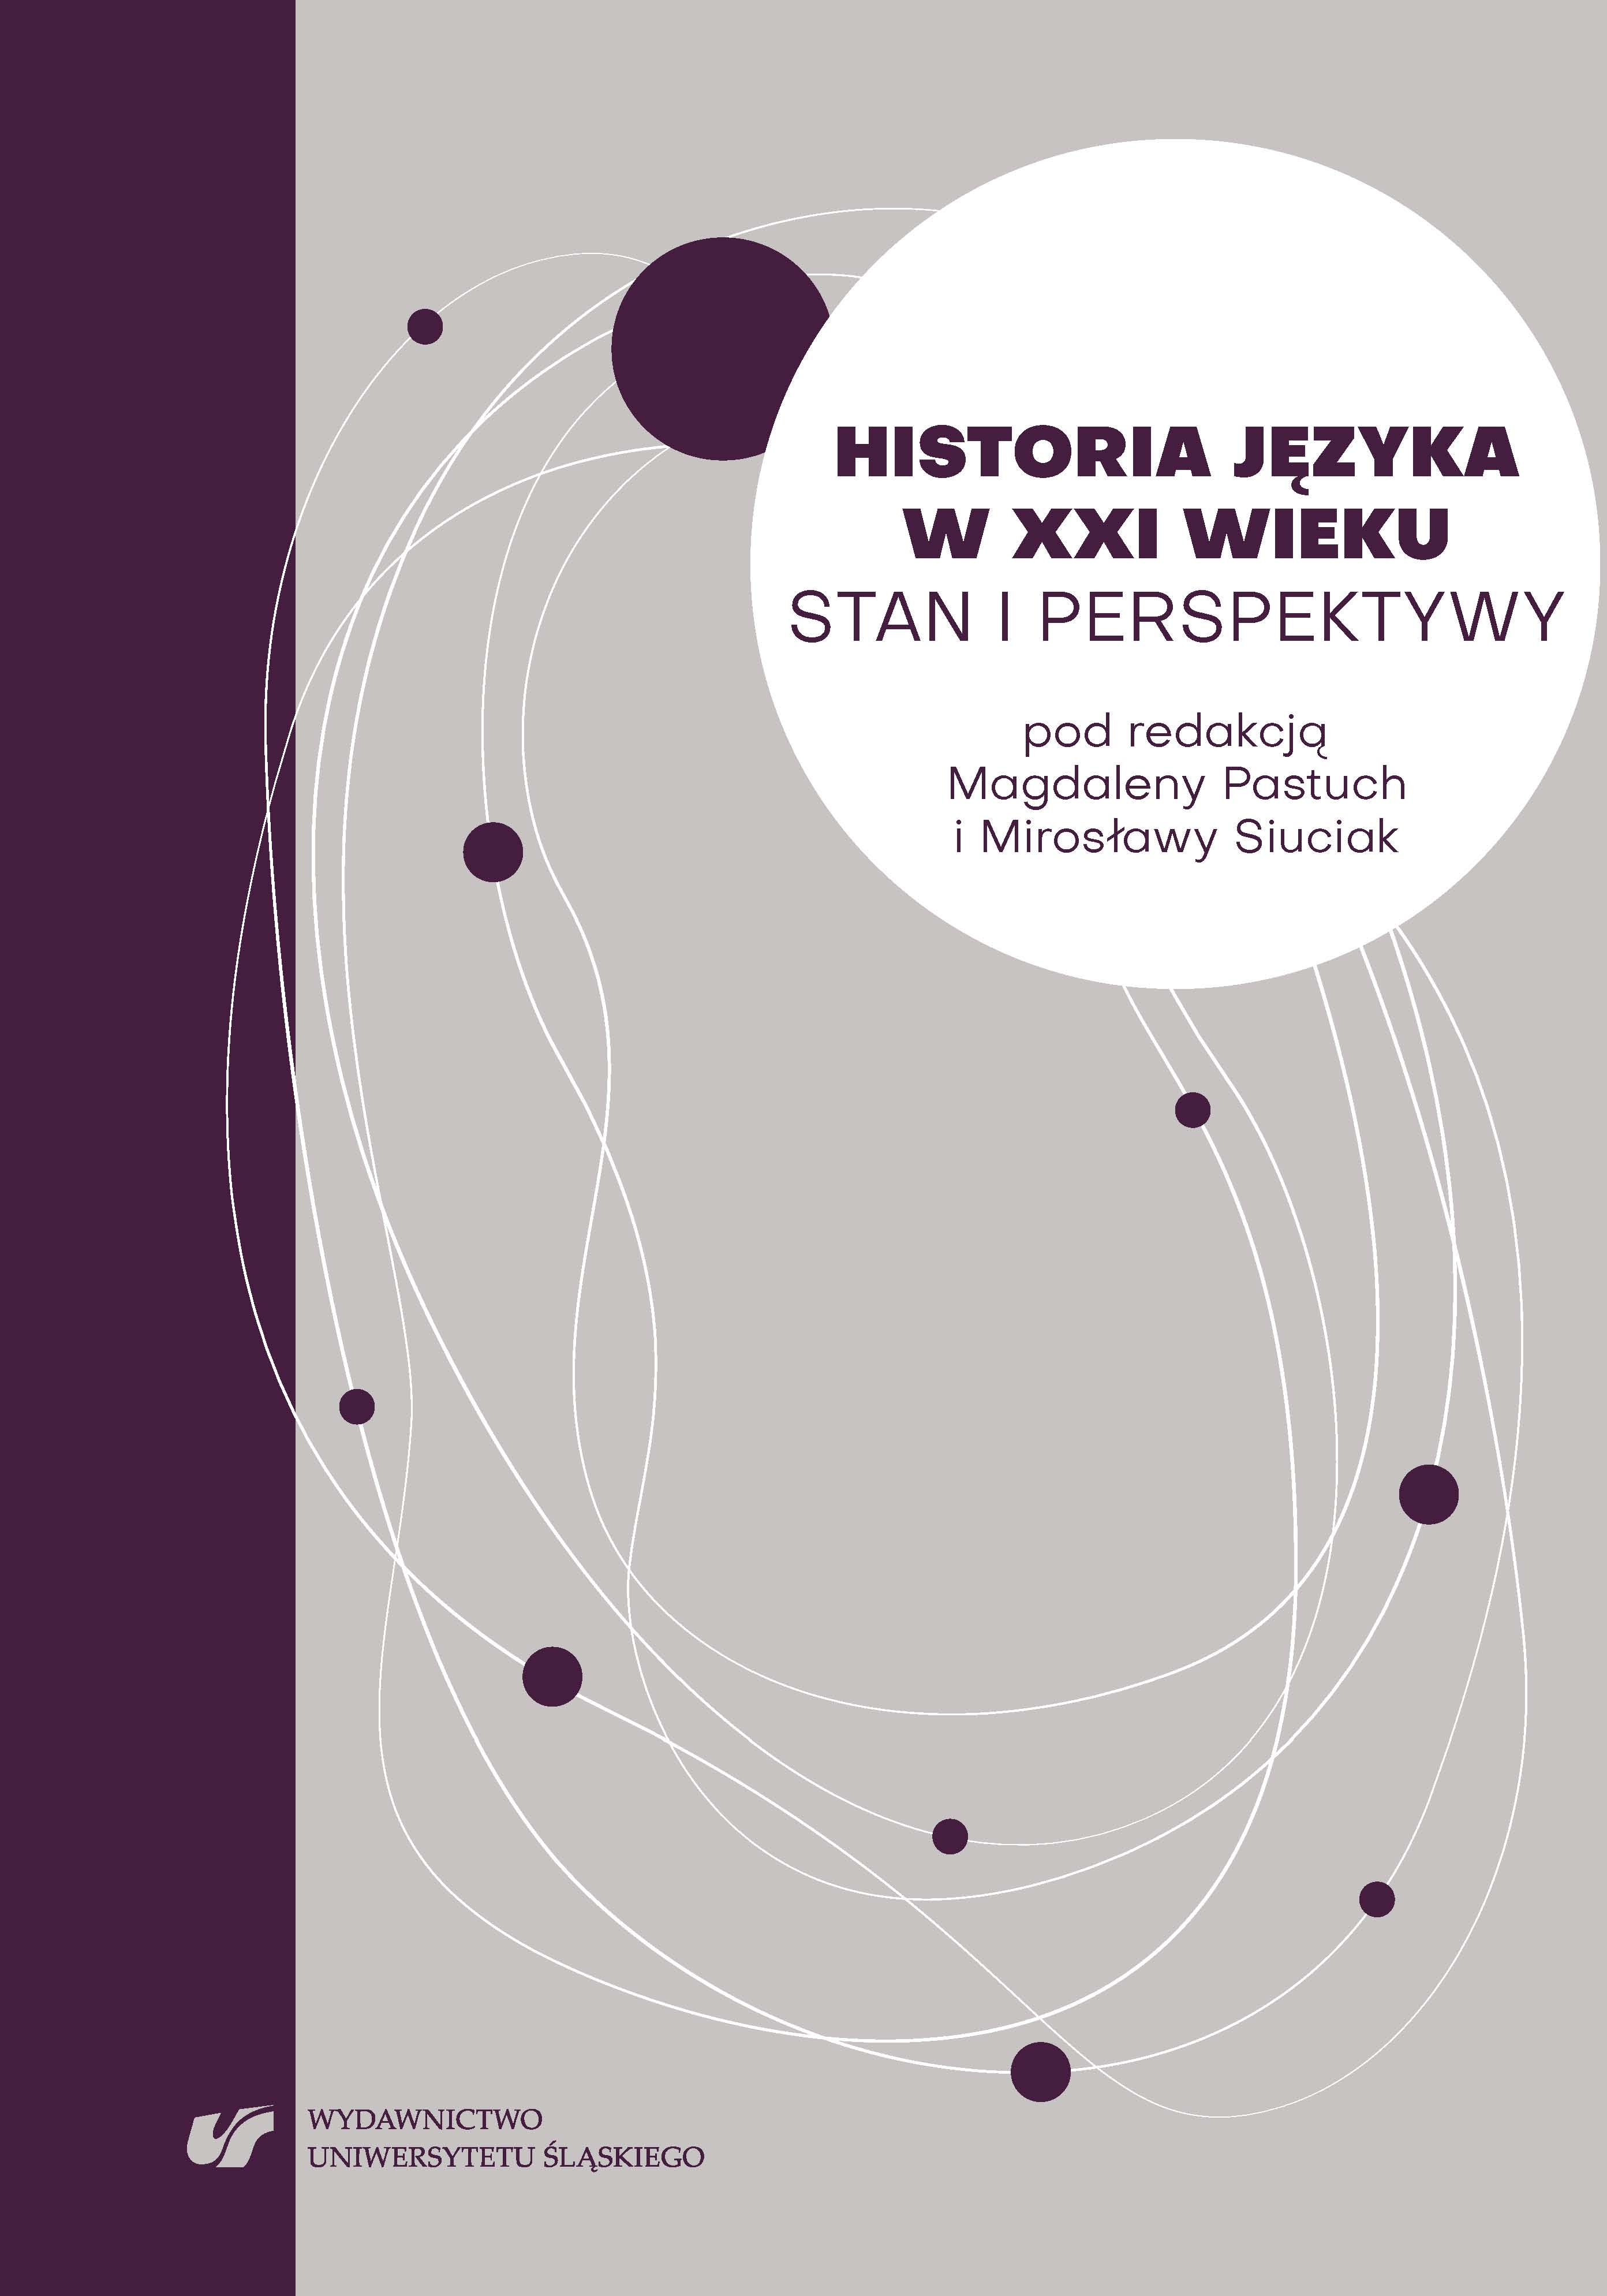 Research on bi- and multi-lingualism of prominent carriers of language in the space of Polish: A new subfield of linguistic history? Cover Image